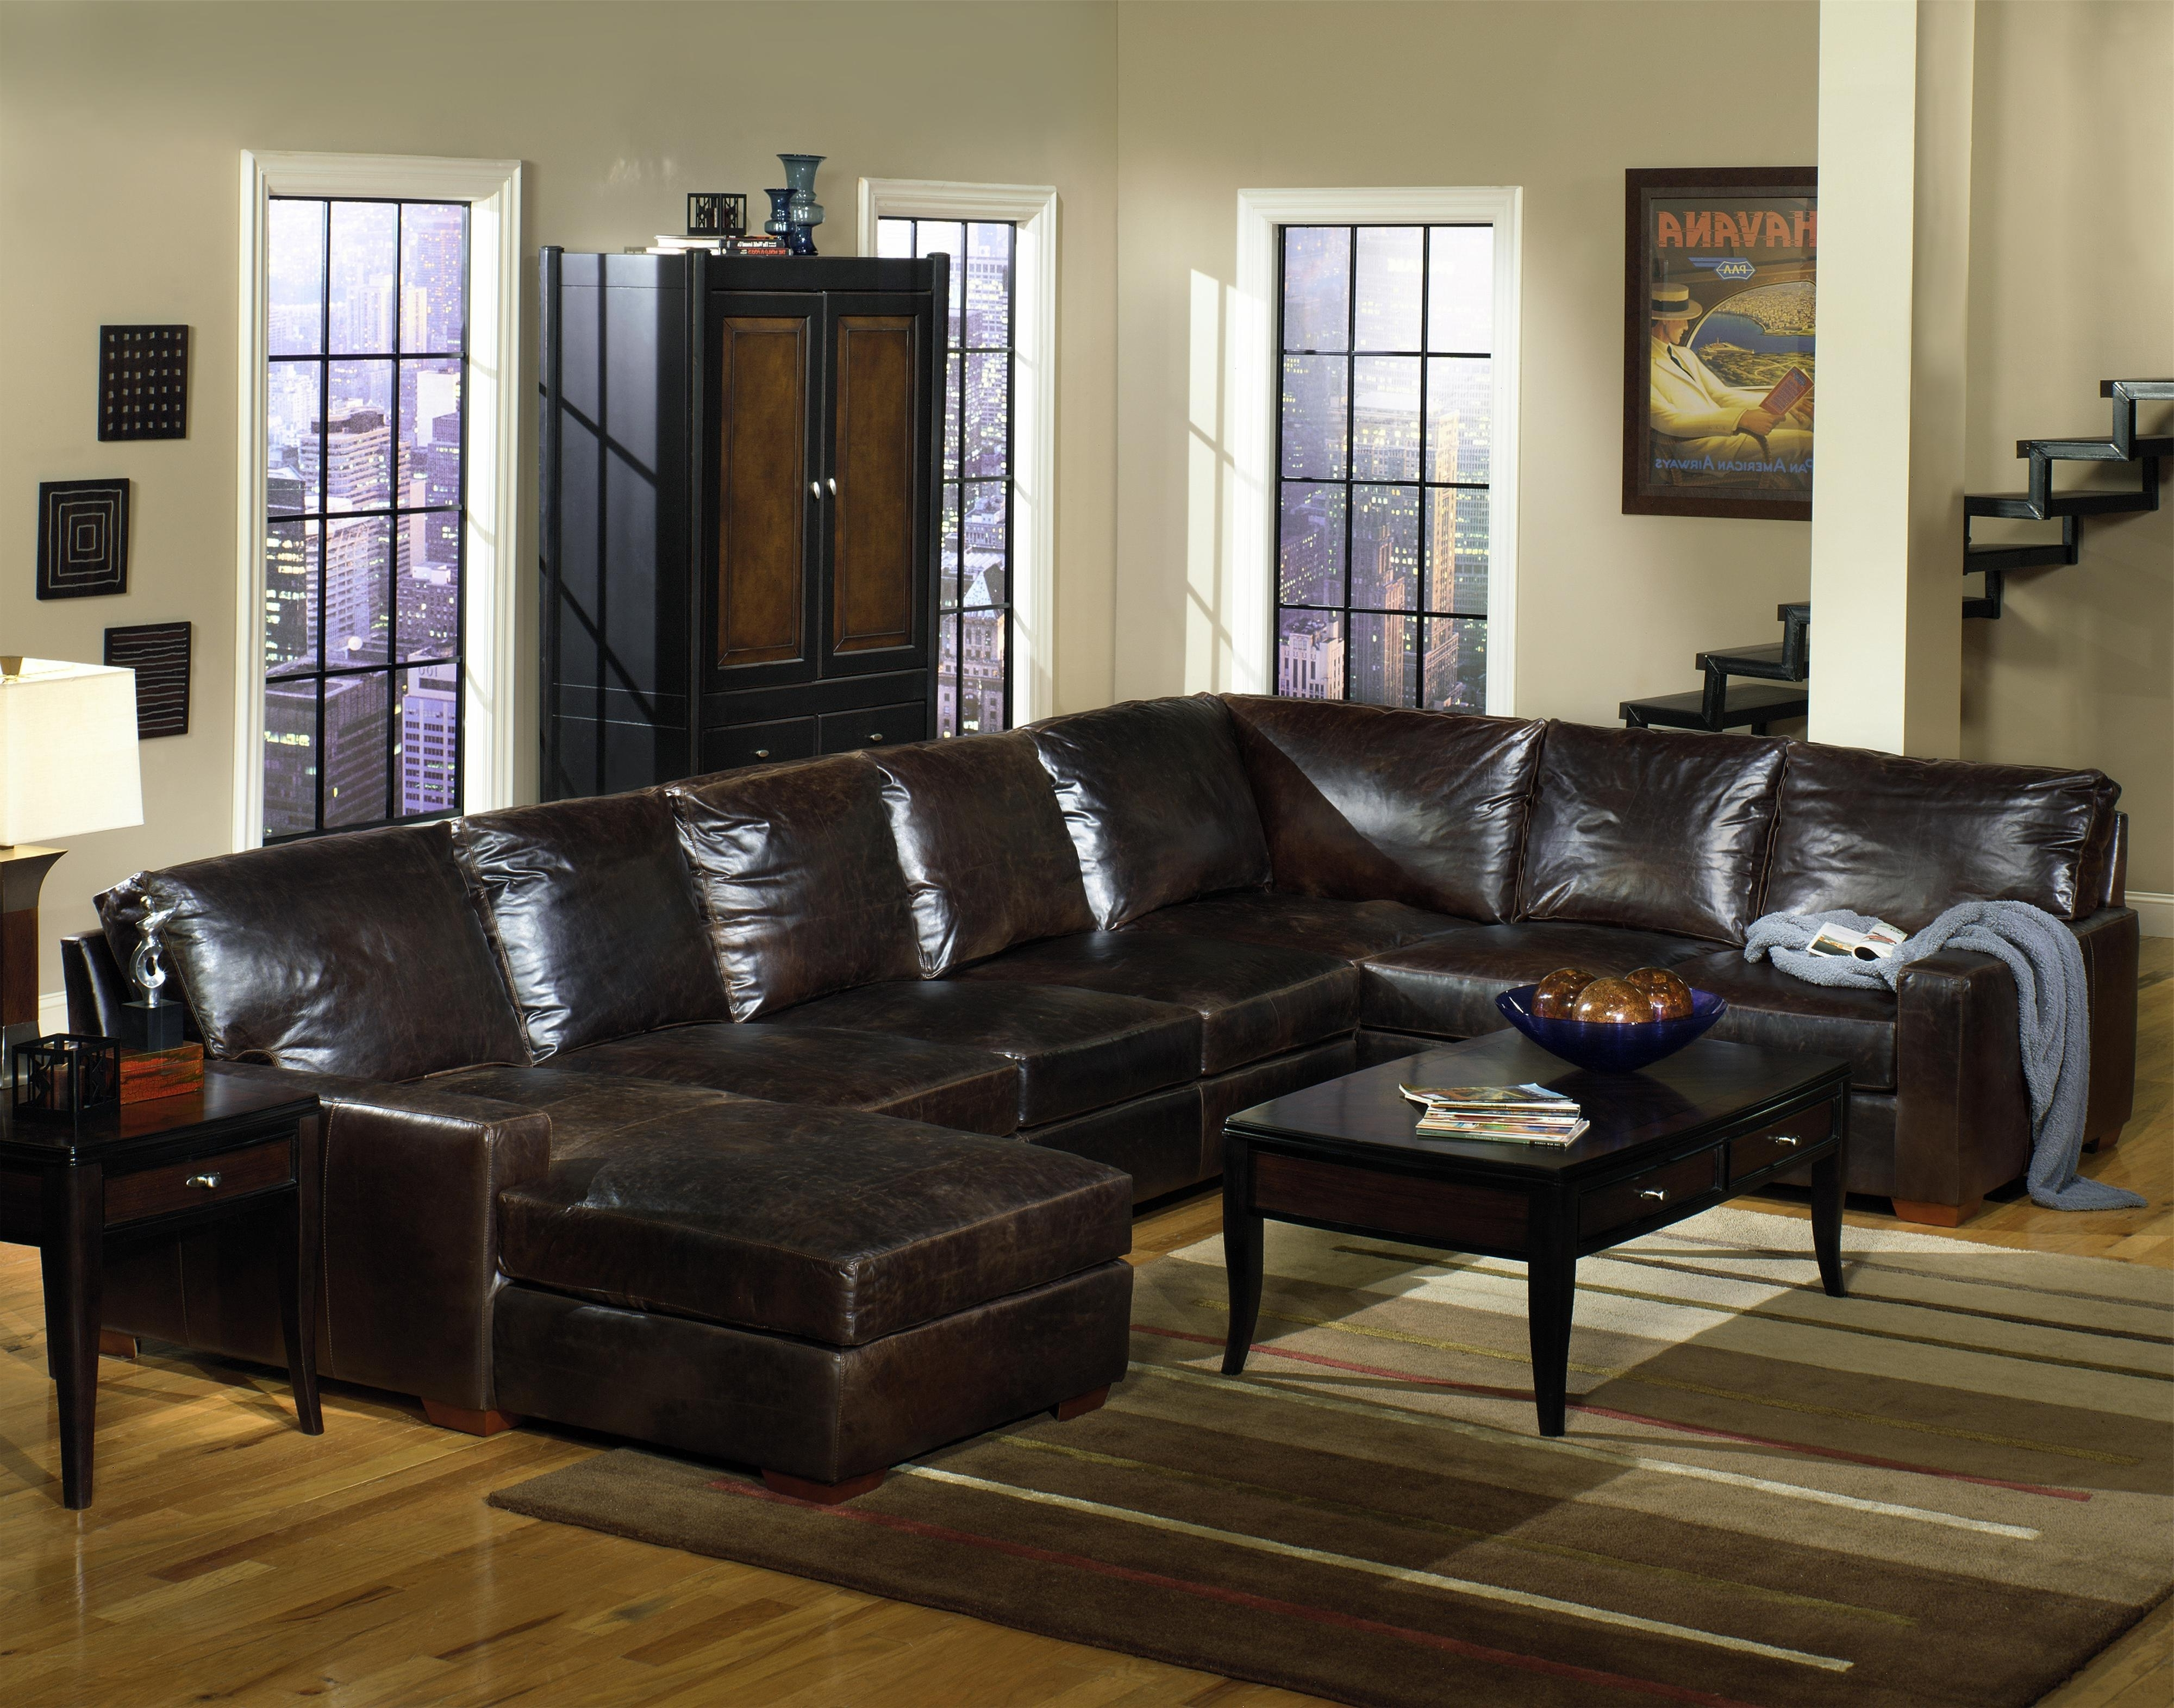 Best And Newest Usa Premium Leather 9935 Track Arm Sofa Chaise Sectional Regarding Leather Sectionals With Chaise And Recliner (View 10 of 15)